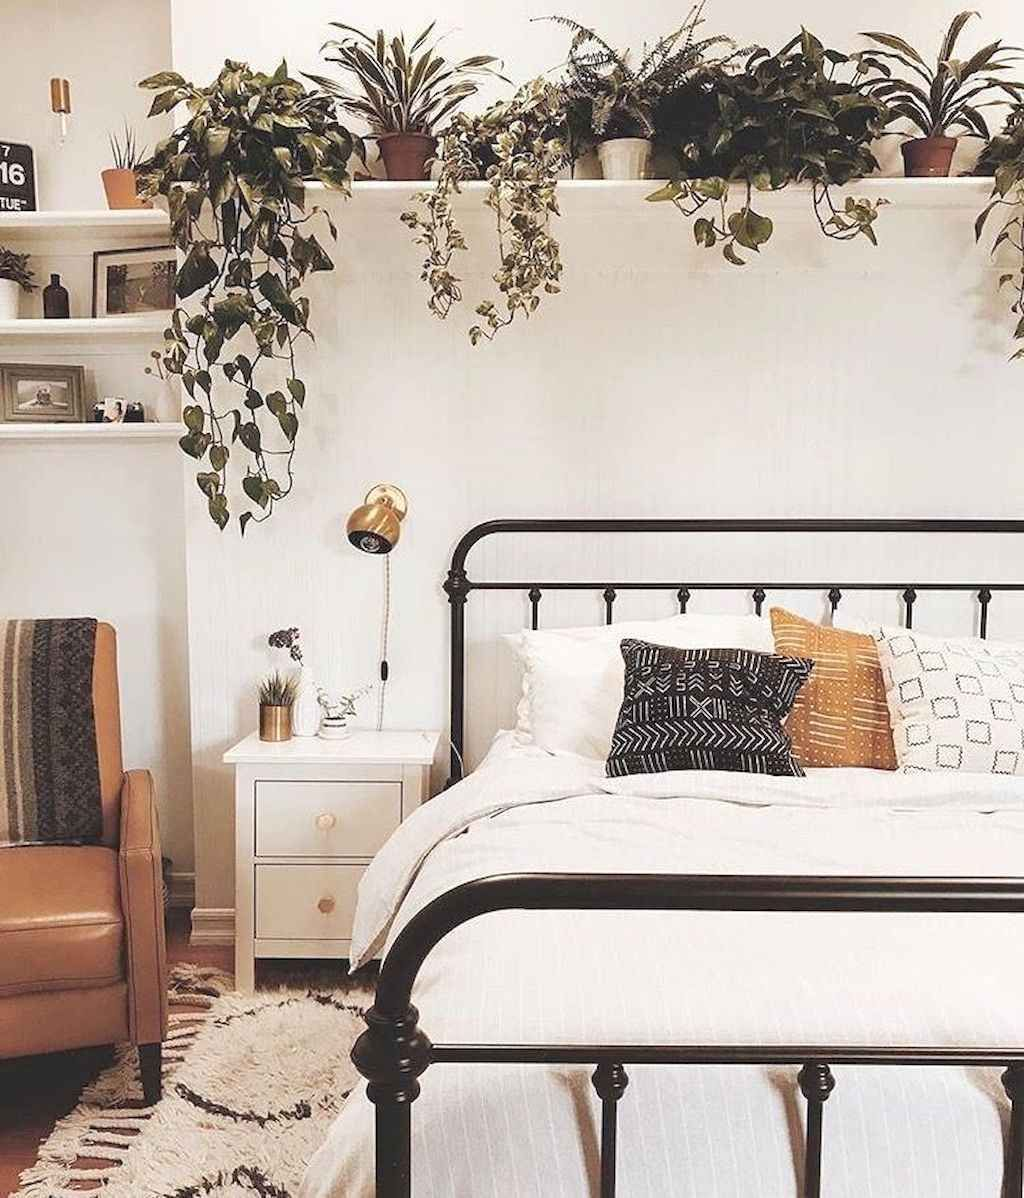 19 First Apartment Decorating Ideas On A Budget Decorationroom Apartment Bedroom Decor Small Apartment Bedrooms Small Apartment Decorating